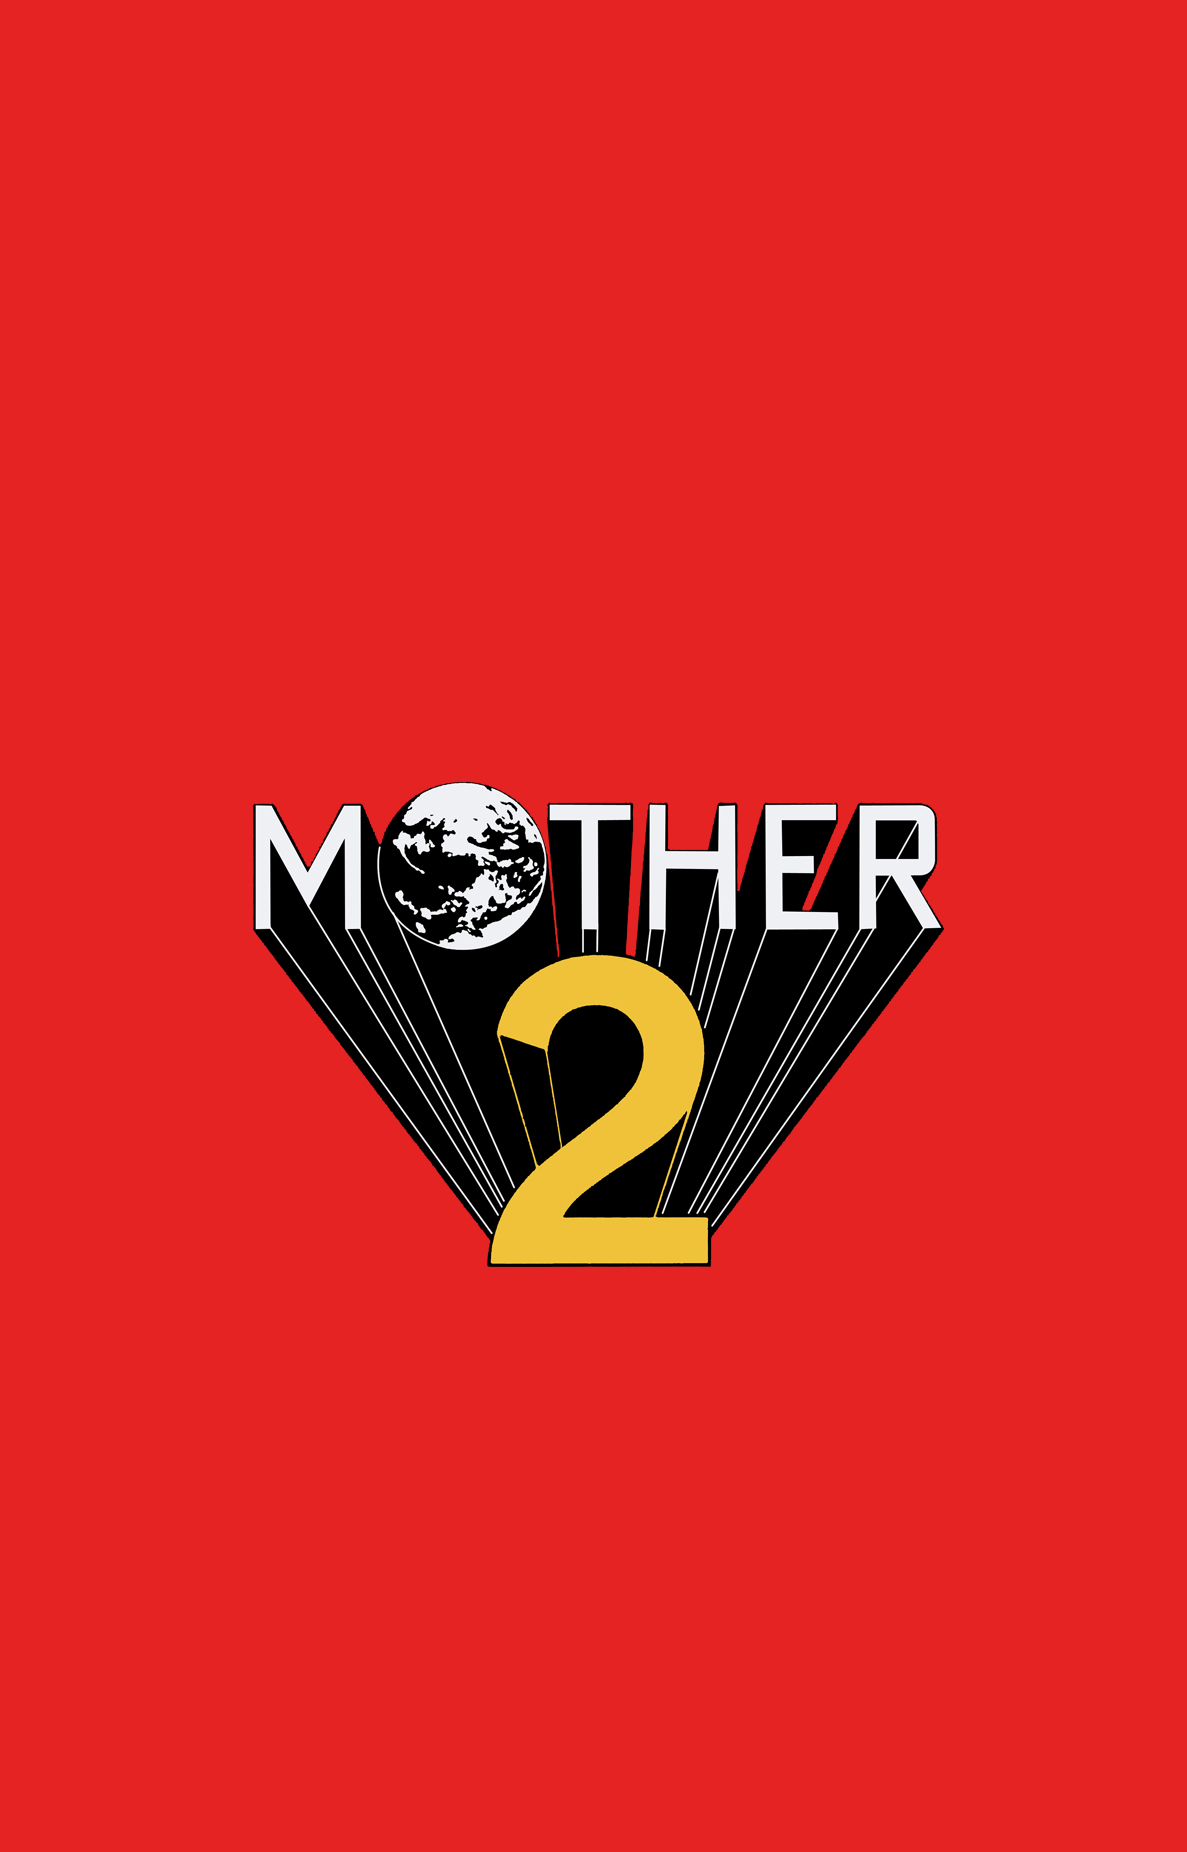 mother 3 images mother 2 promo hd wallpaper and background